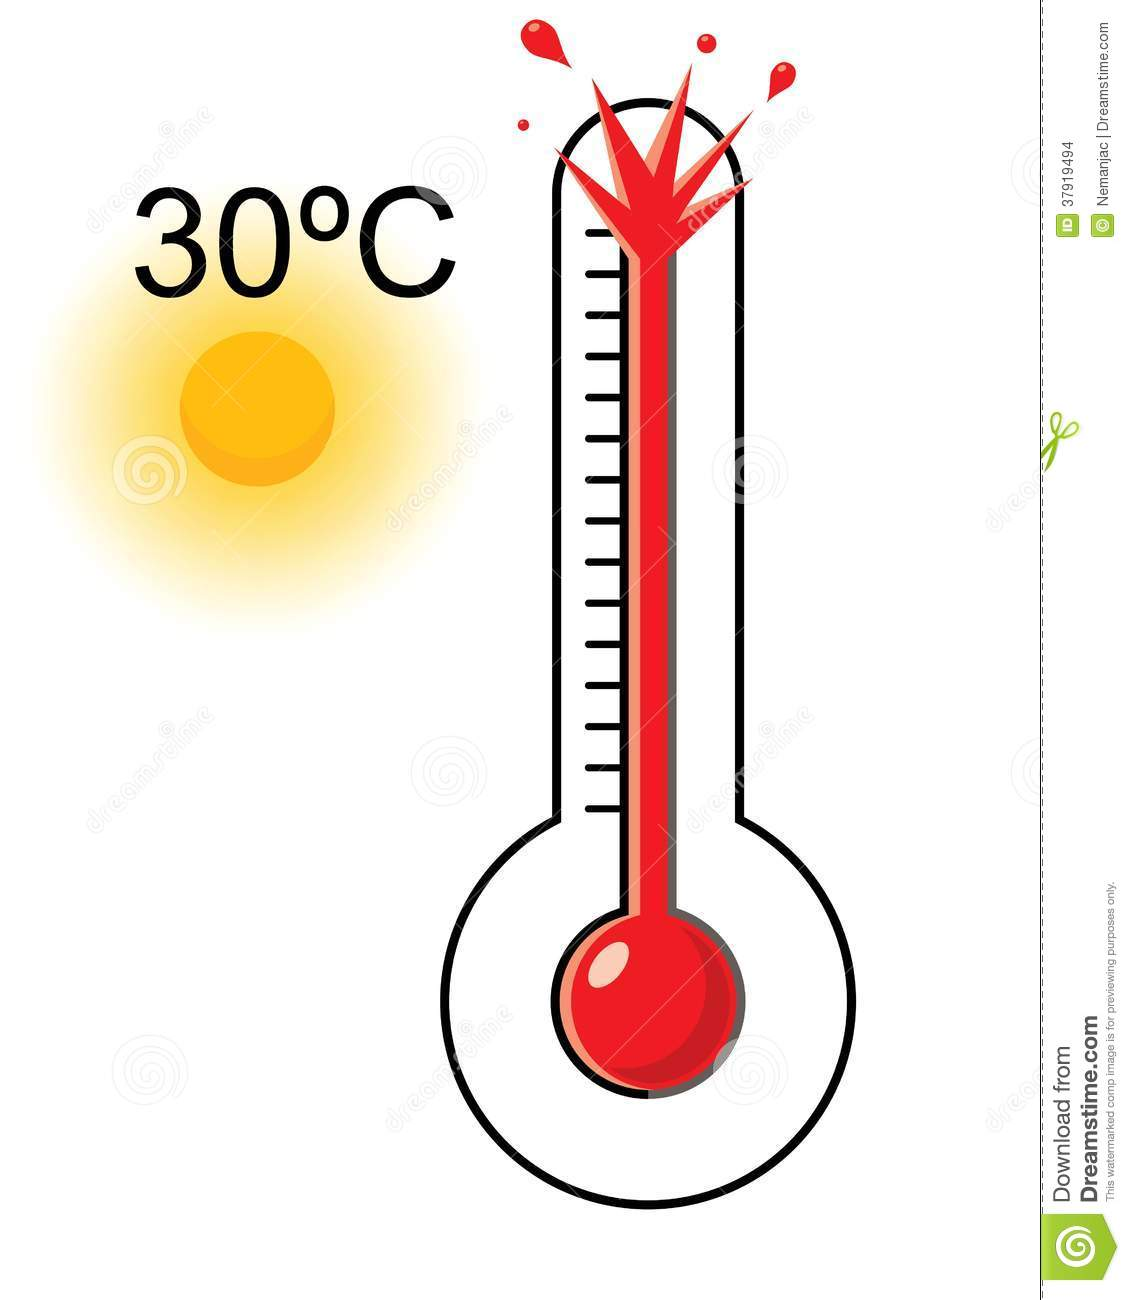 1130x1300 Hot Weather Pictures Clip Art